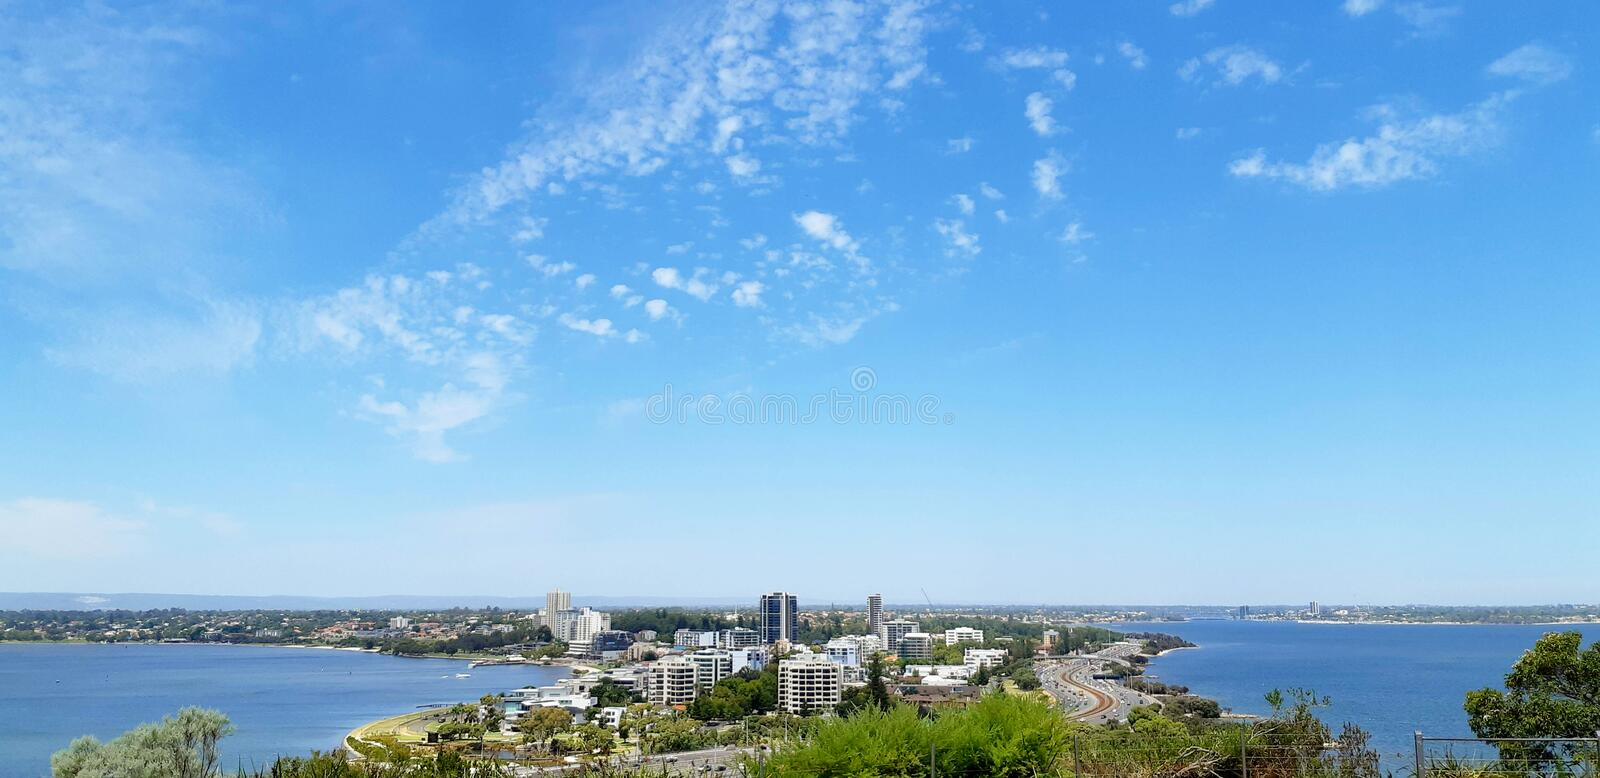 kings park and botanic garden in Perth stock photo